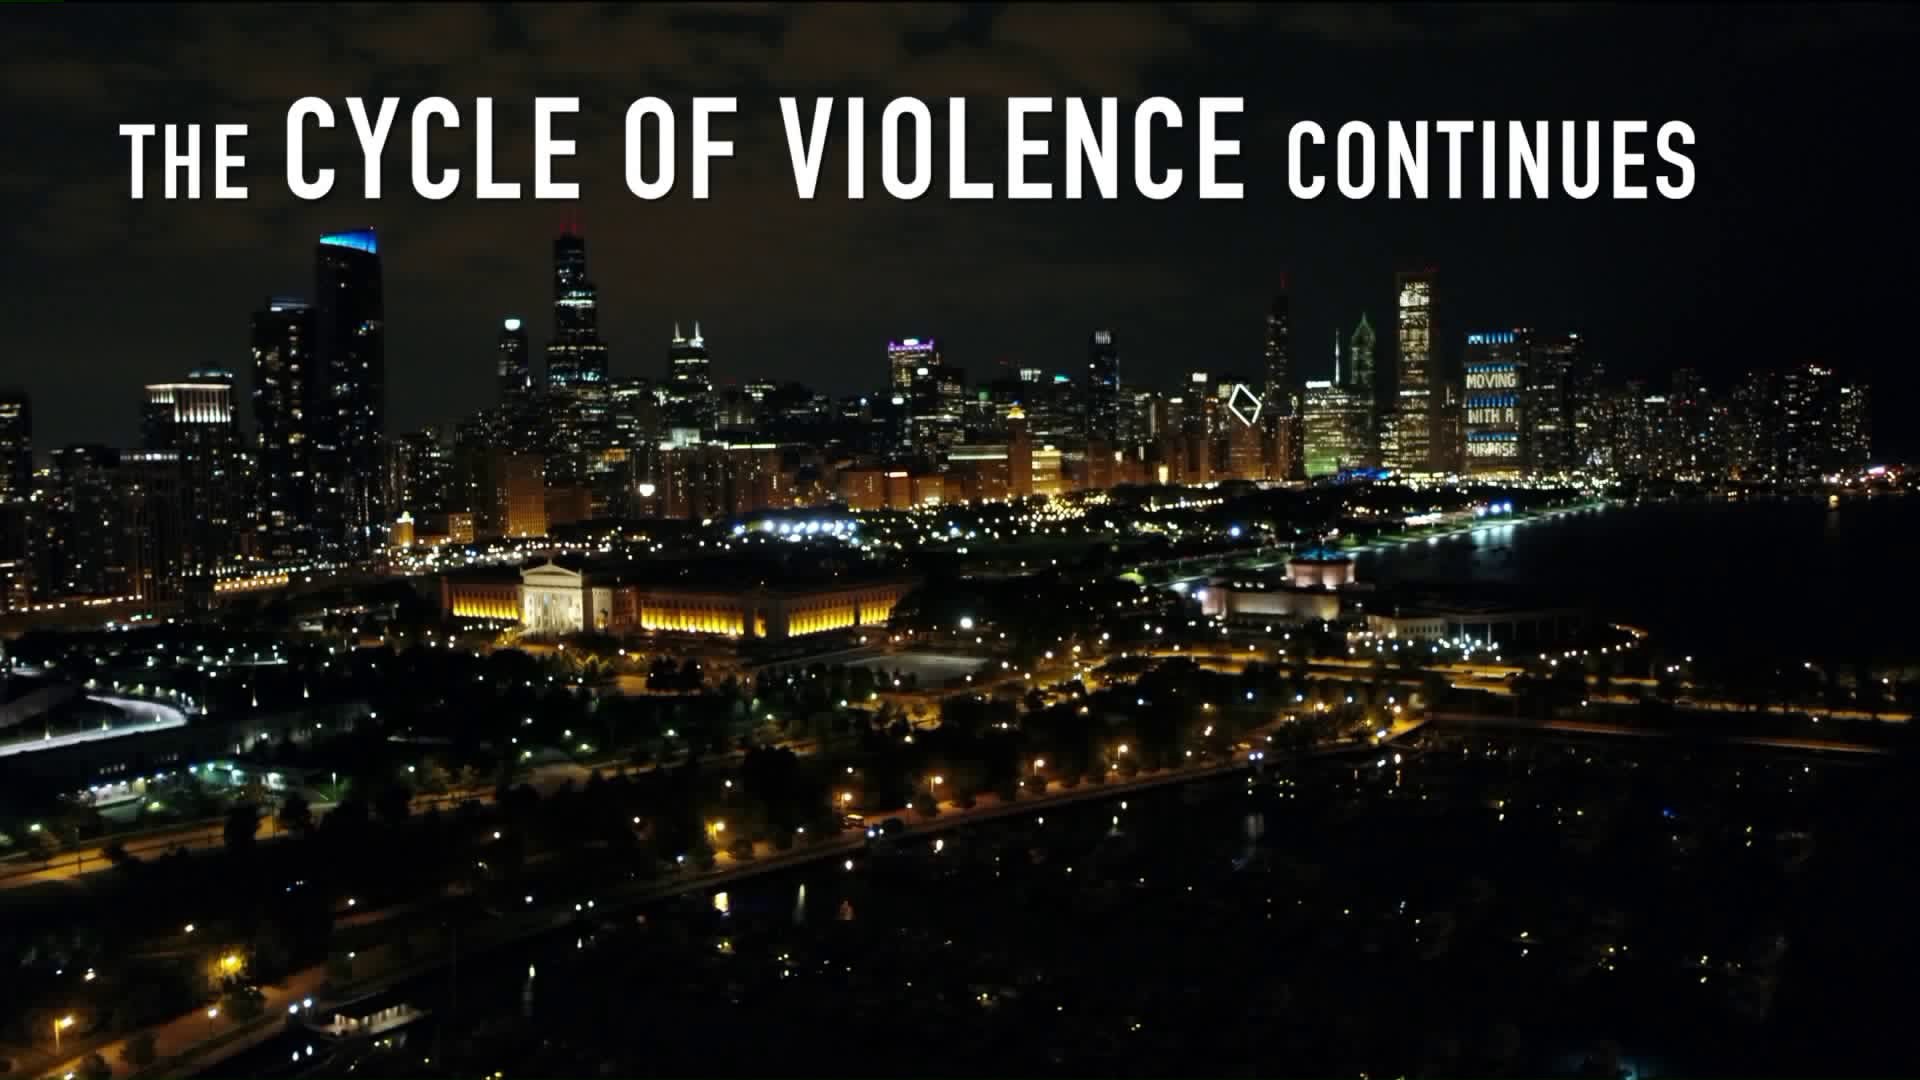 Code Of Silence On Chicago Streets Leaves Police Without